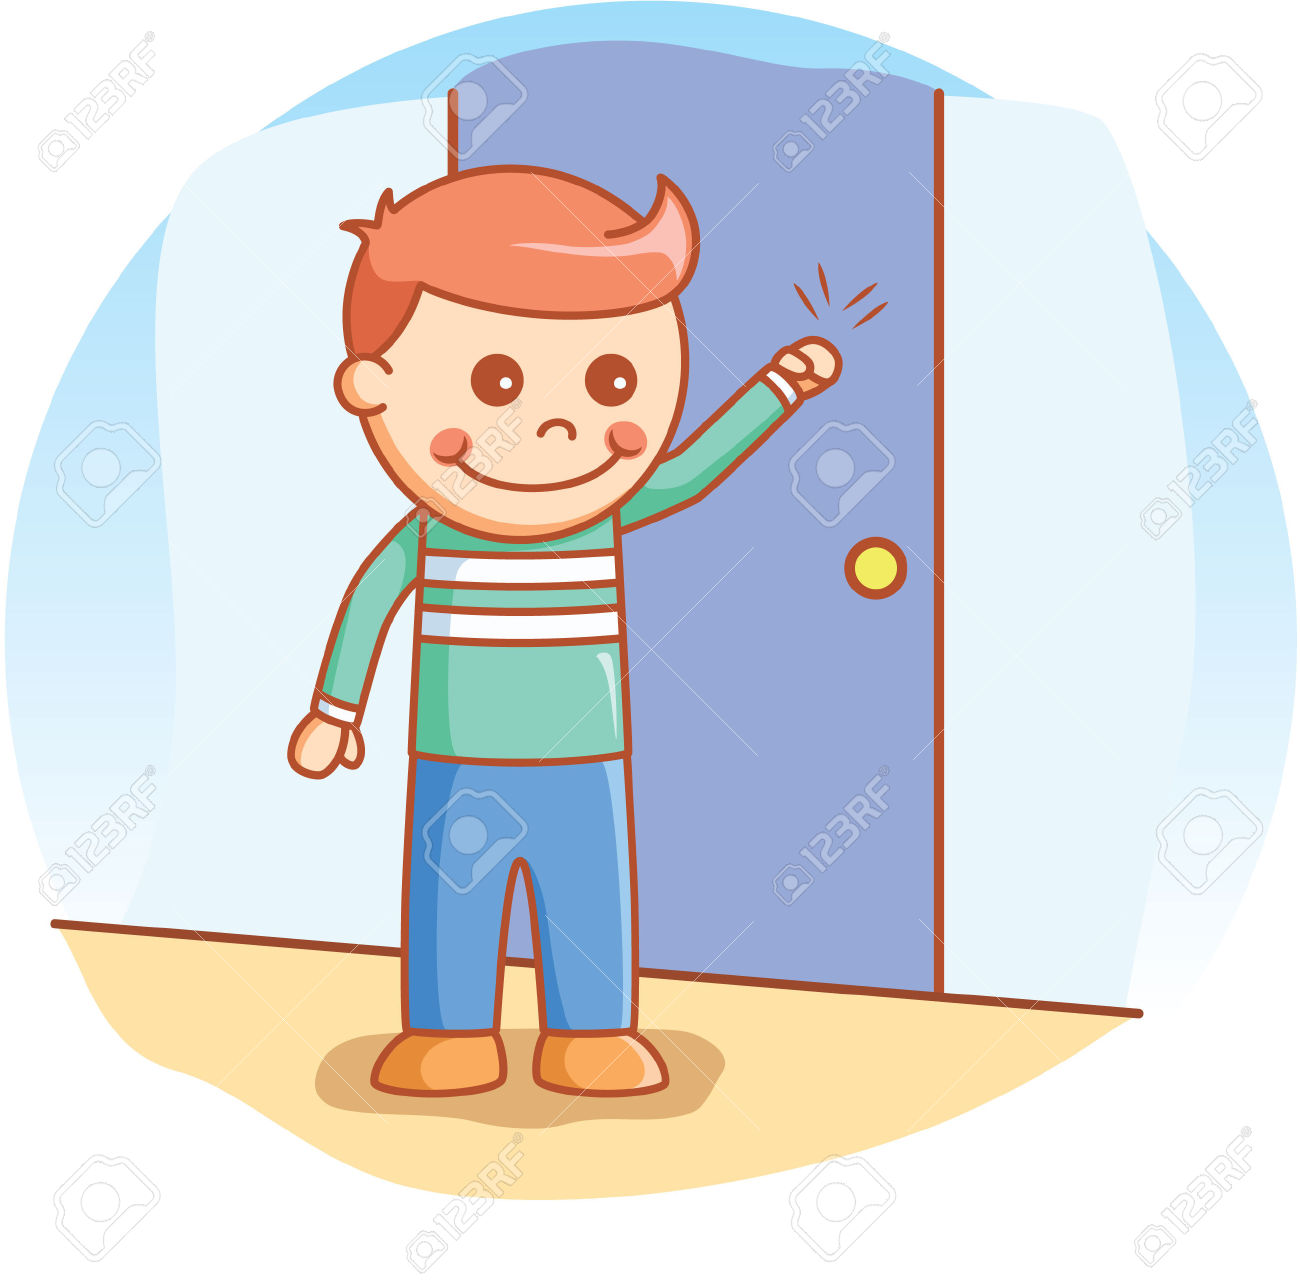 Child Knocking On Door Clipart.